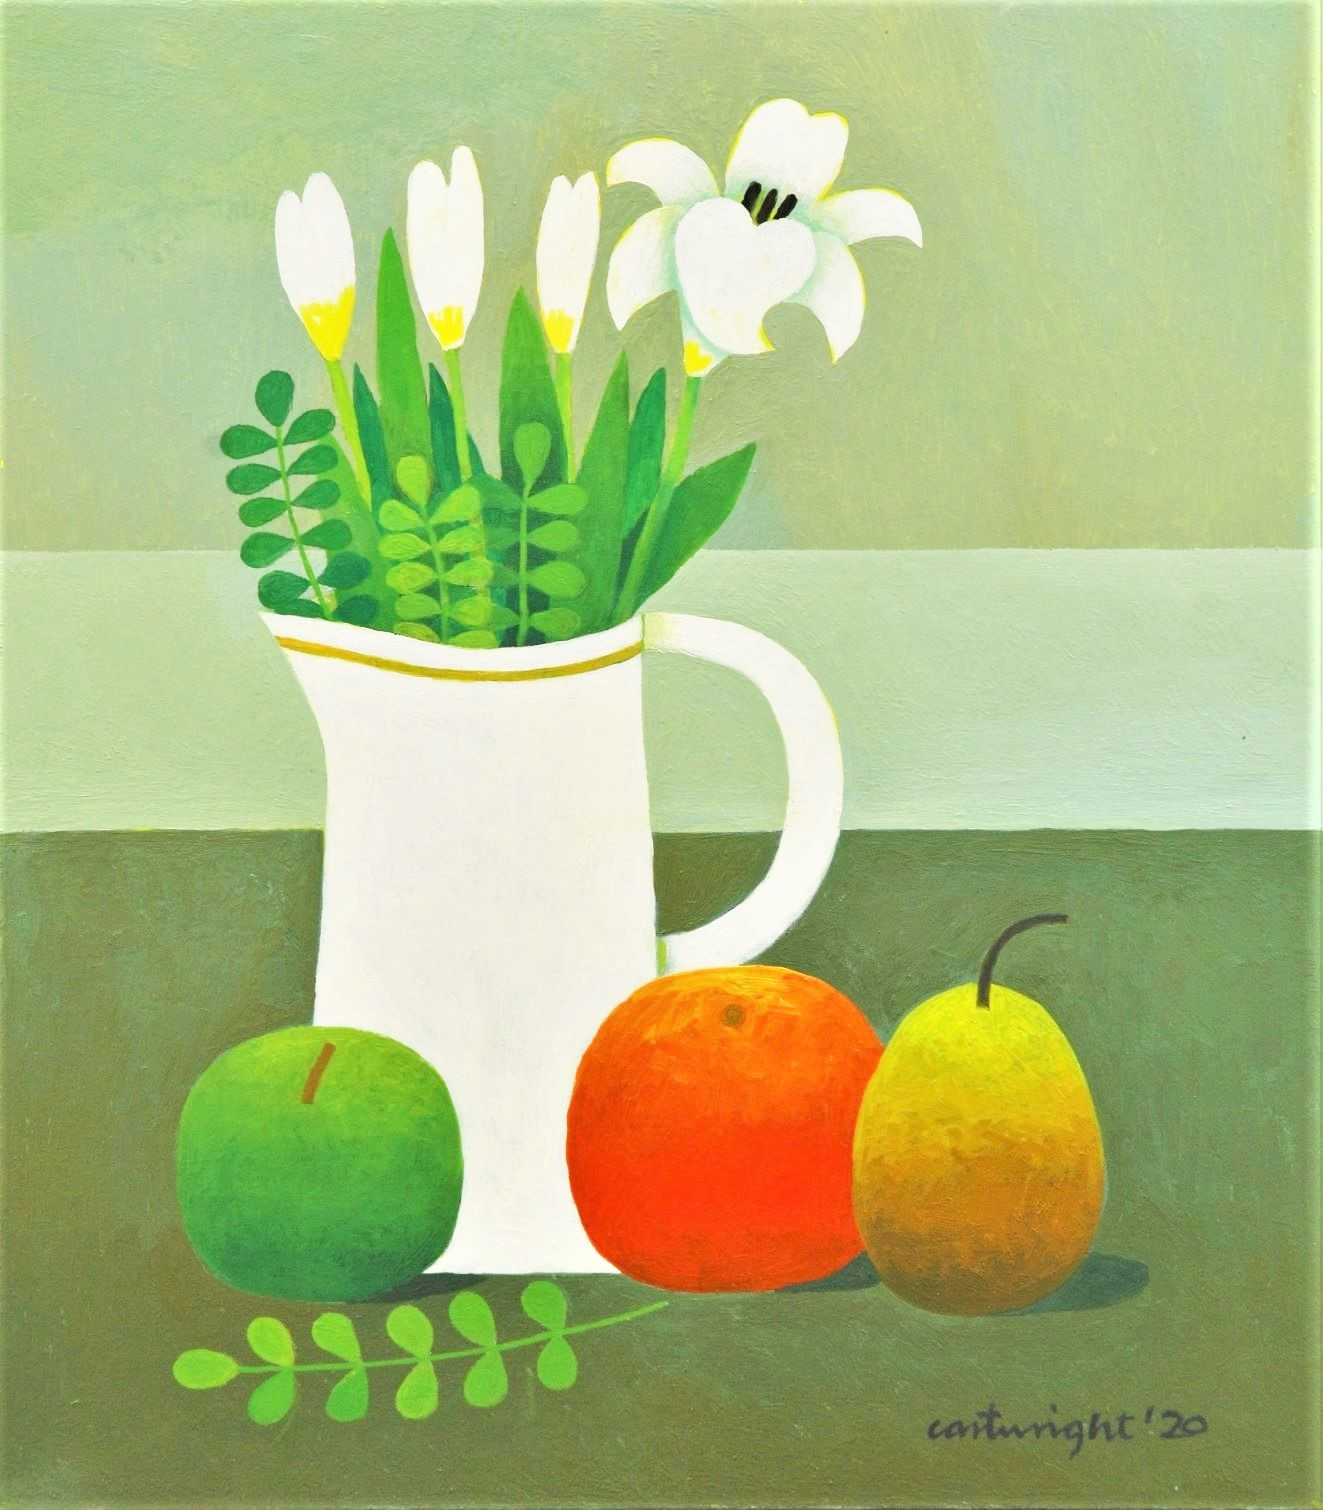 reg cartwright painting of white flowers with fruit